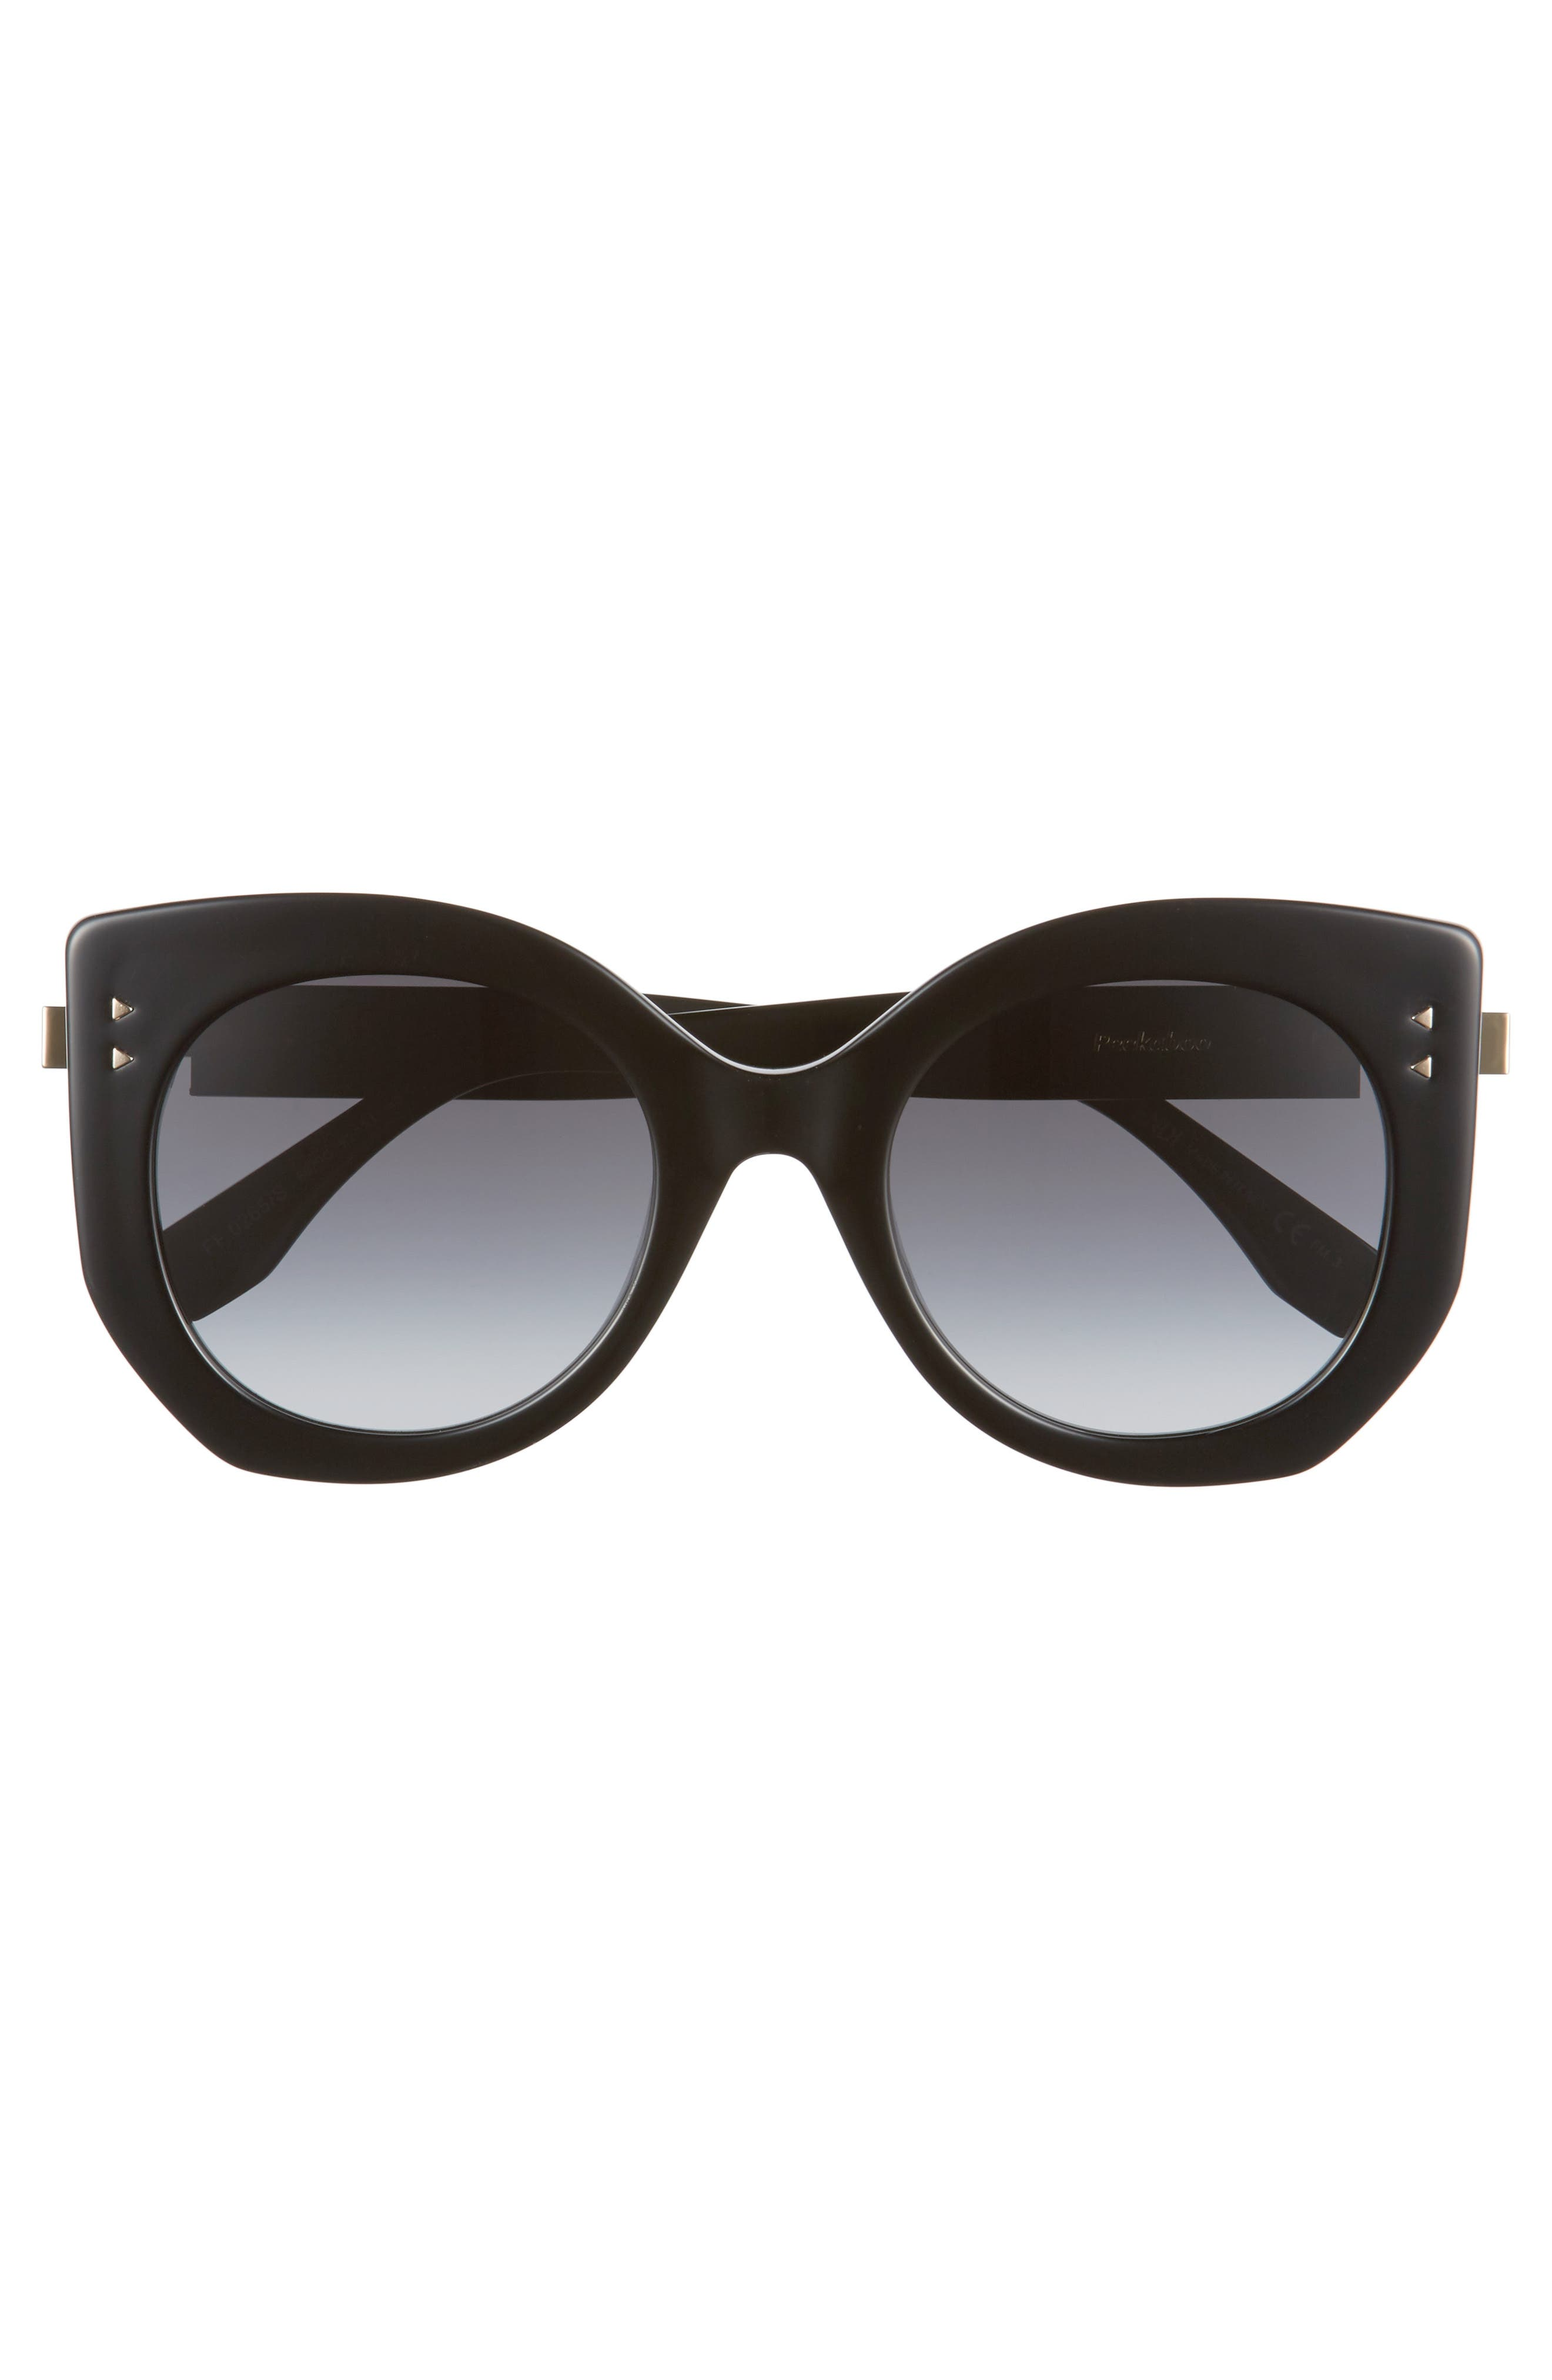 52mm Butterfly Sunglasses,                             Alternate thumbnail 3, color,                             001